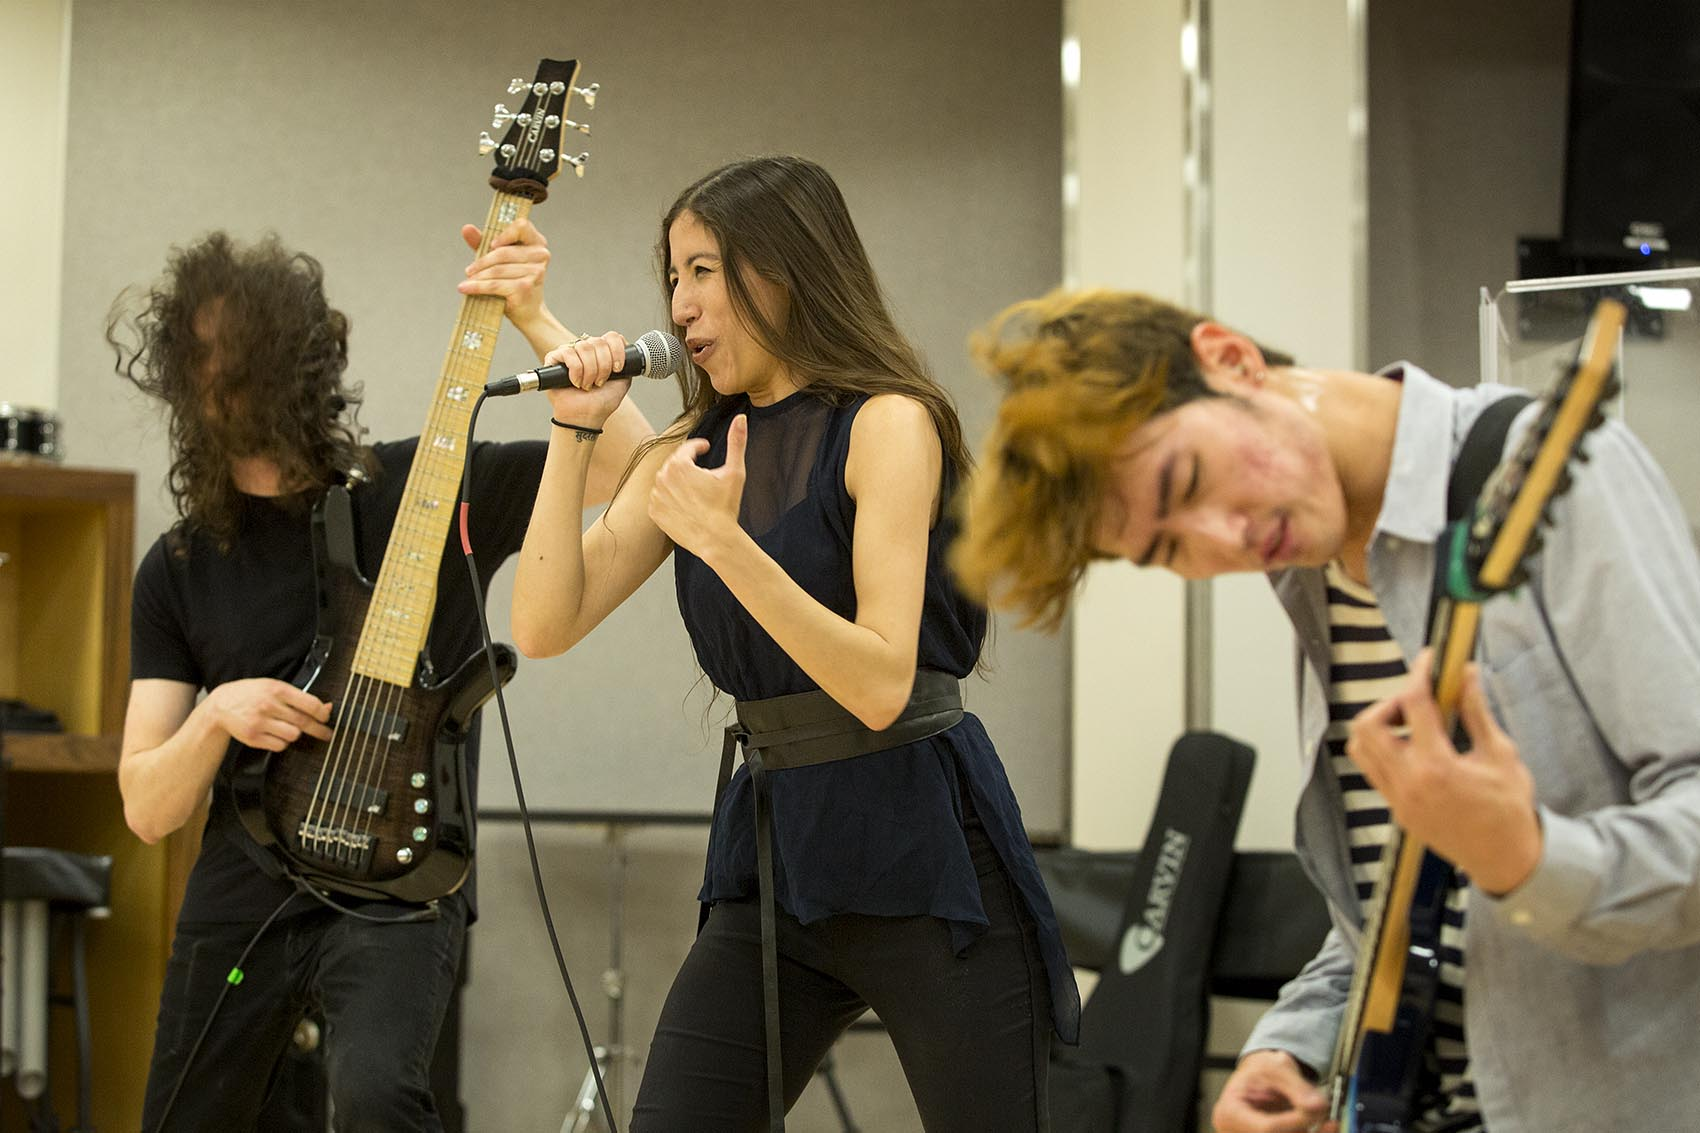 Aversed bassist Martin Epstein, lead singer Haydee Irizarry and lead guitarist Sungwoo Jeong play in a practice room at Berklee College. (Robin Lubbock/WBUR)